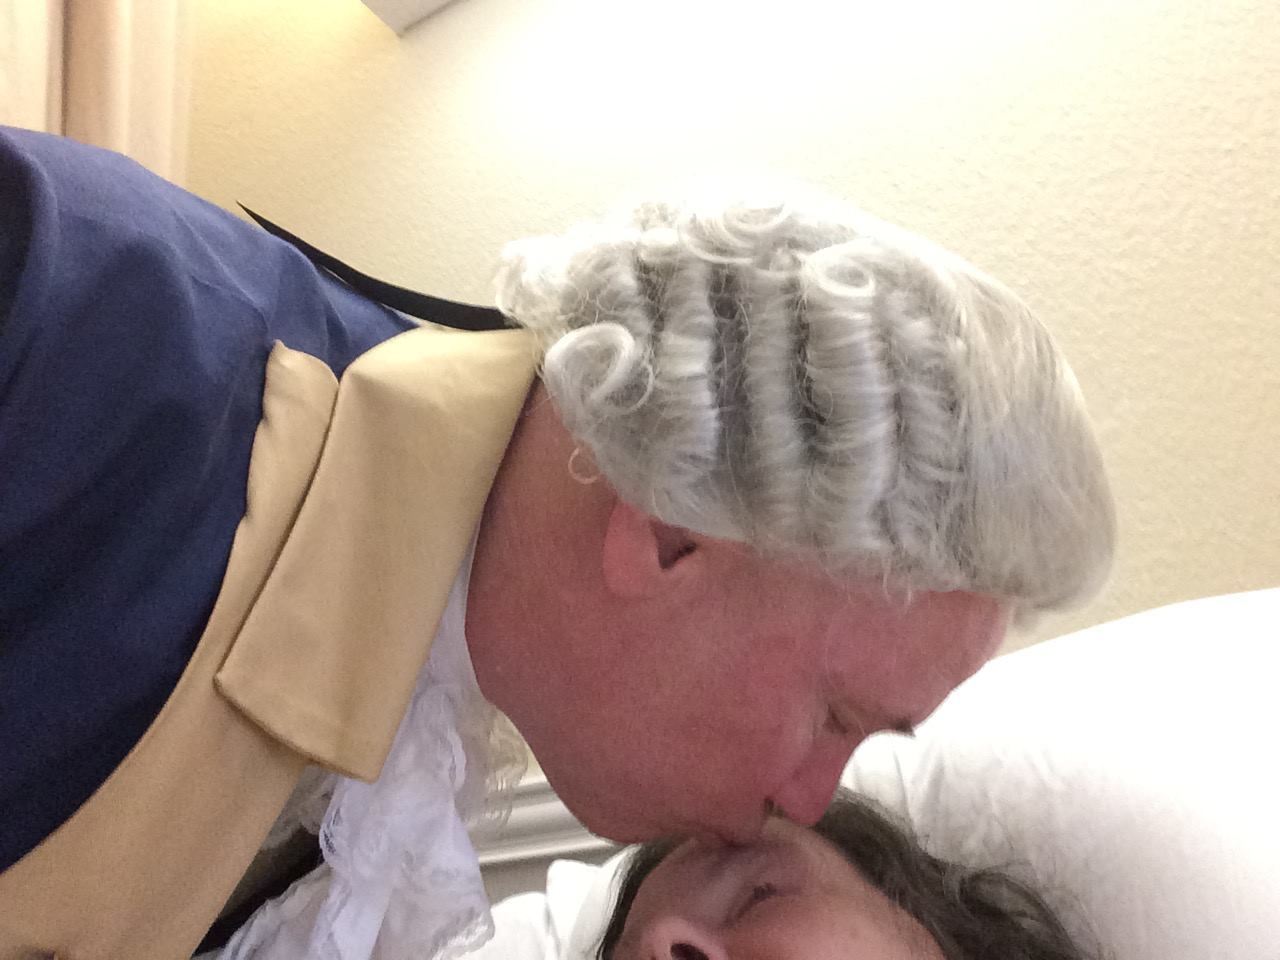 James Carvin visits his sister in a nursing home.